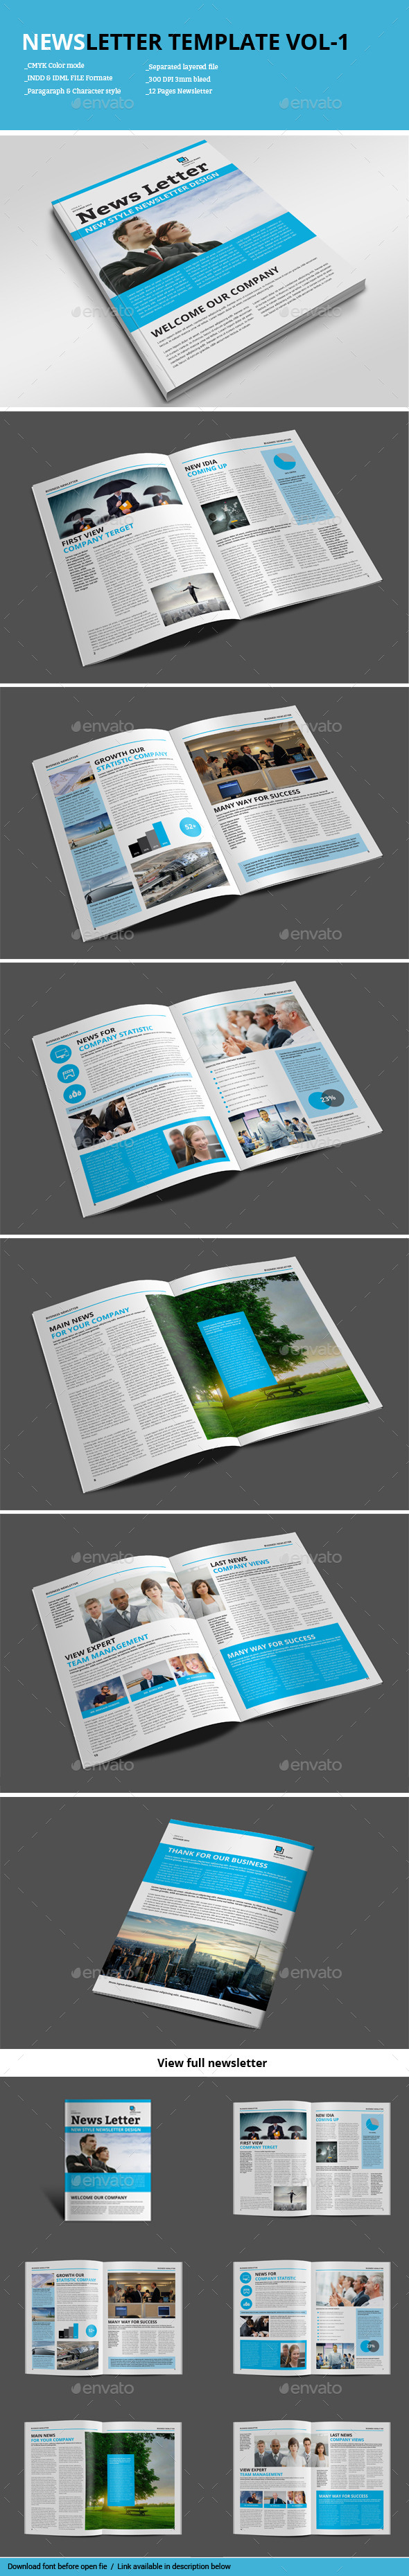 GraphicRiver Newsletter Template Vol-1 9209951